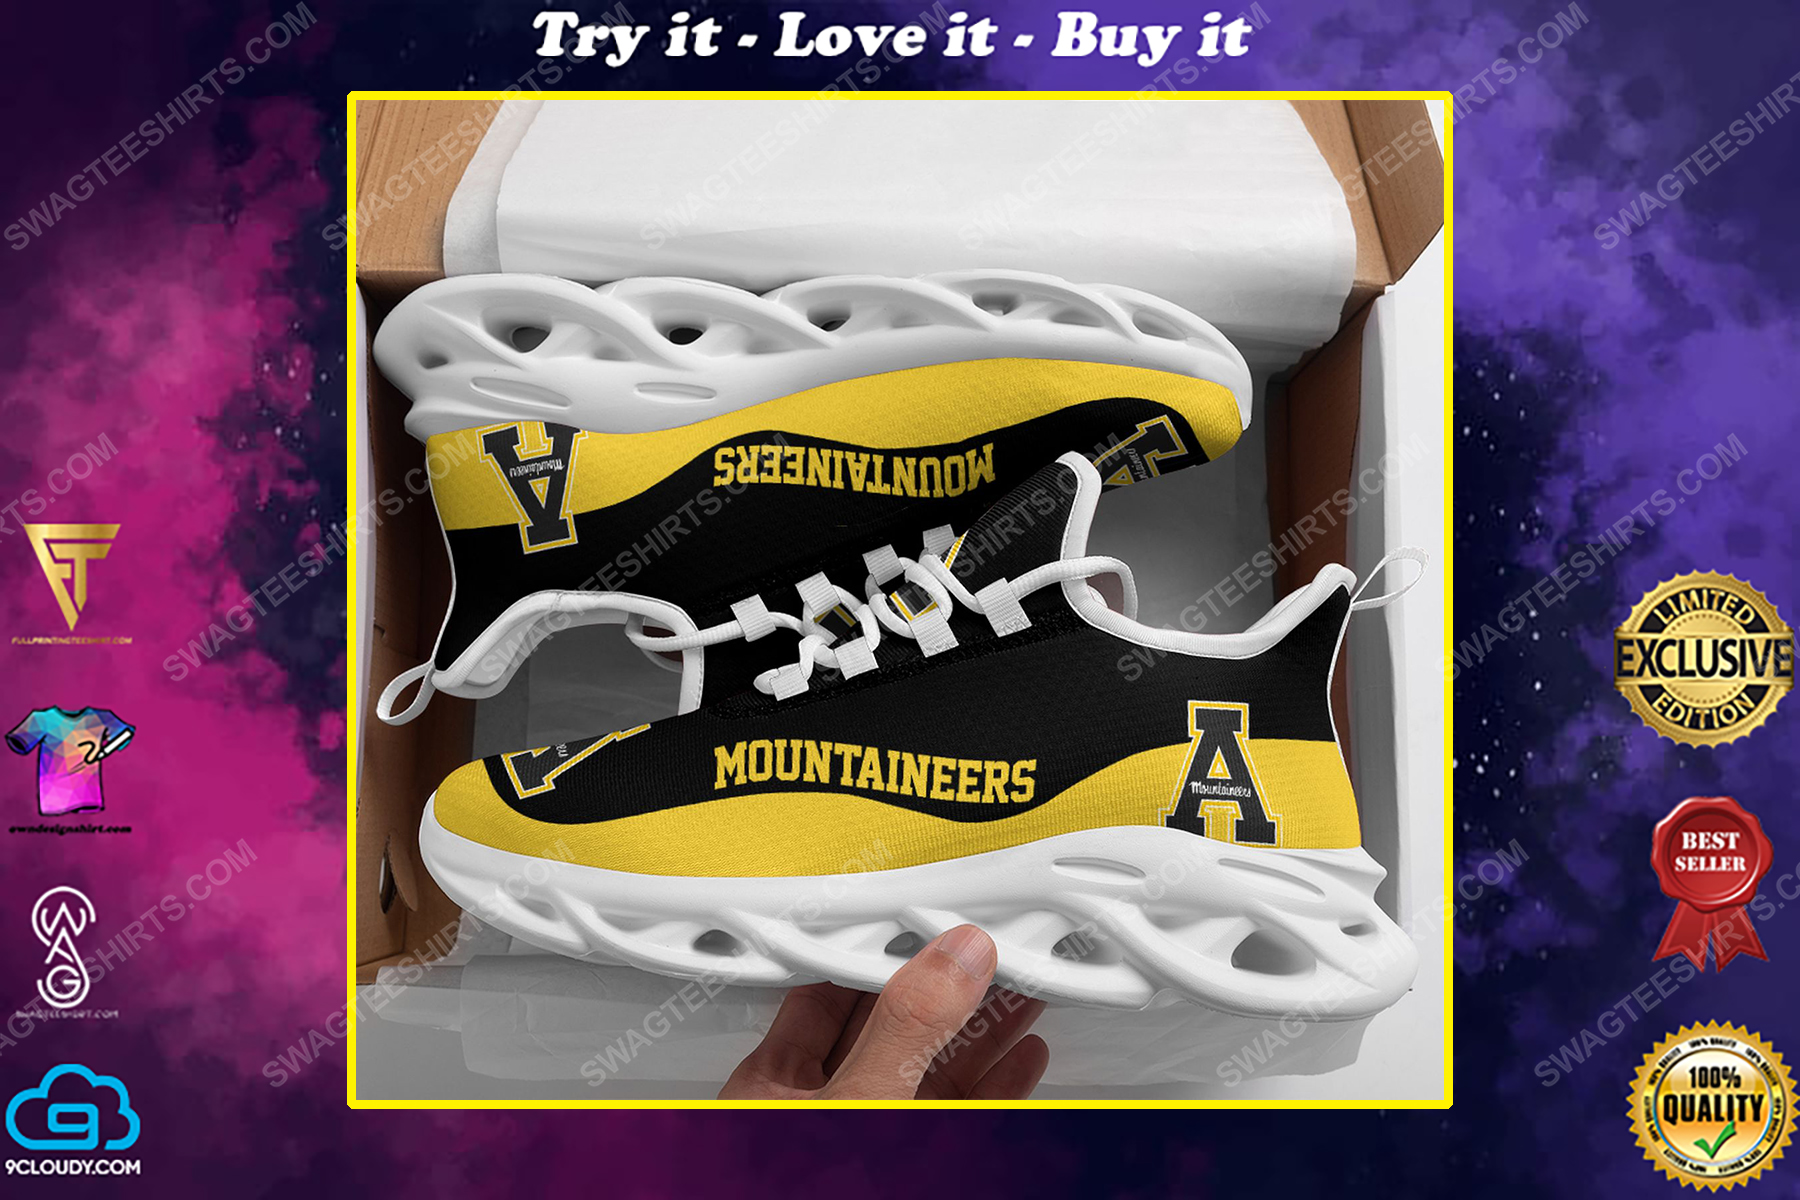 The appalachian state mountaineers football team max soul shoes